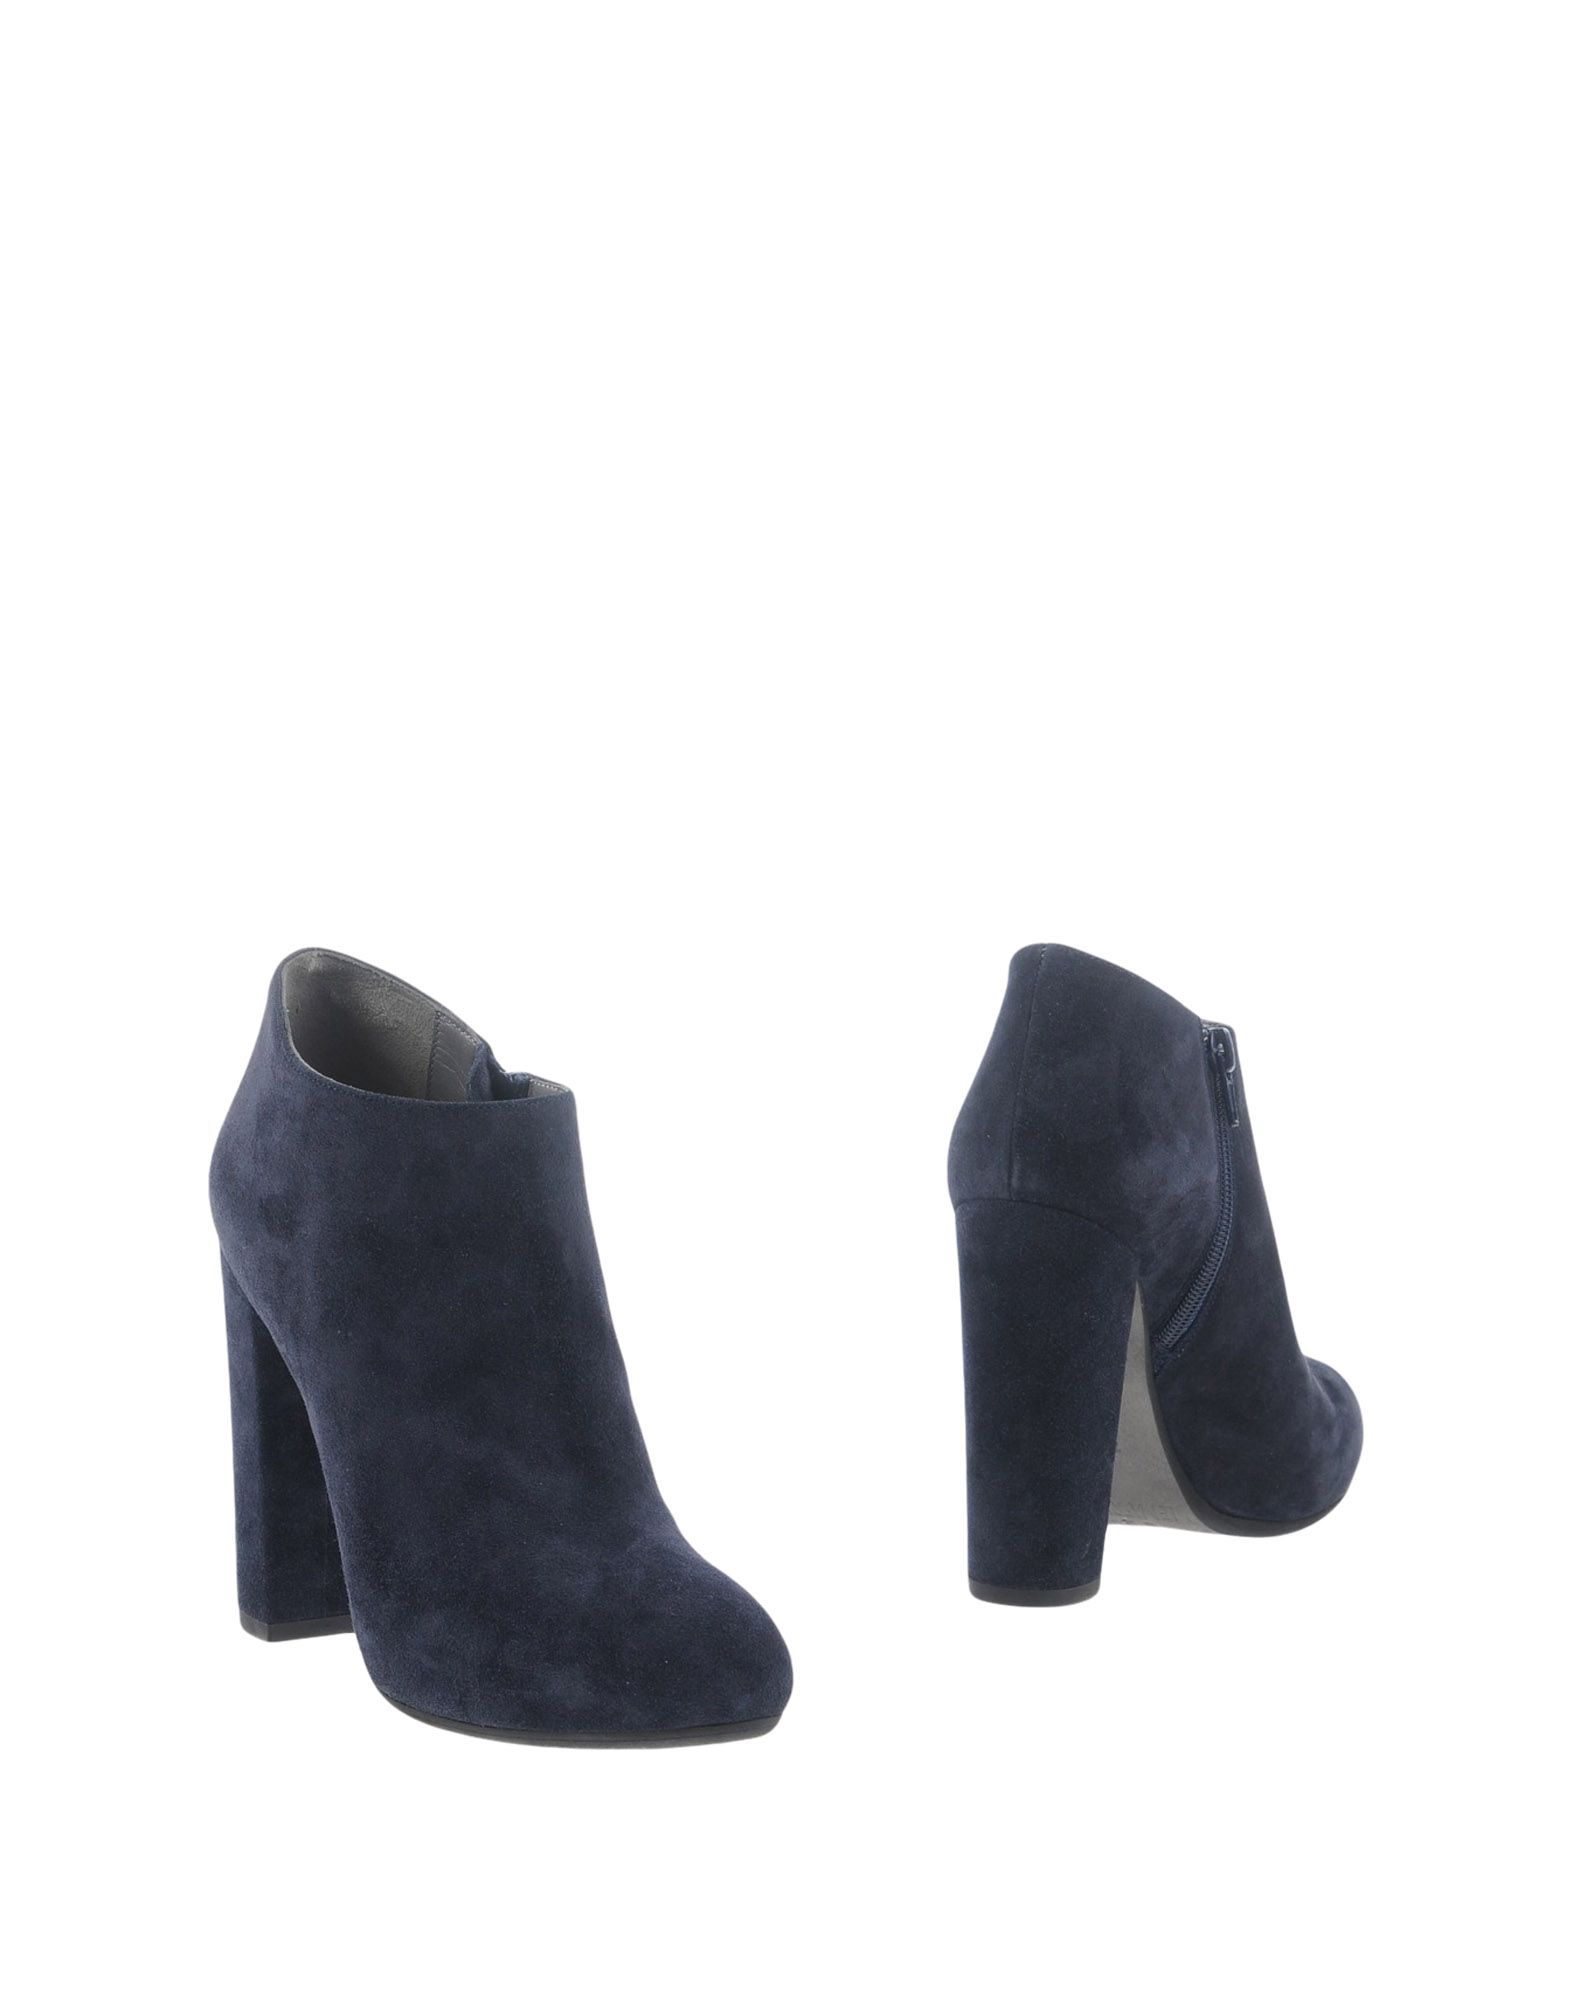 Bottine Le Marrine Femme - Bottines Le Marrine sur